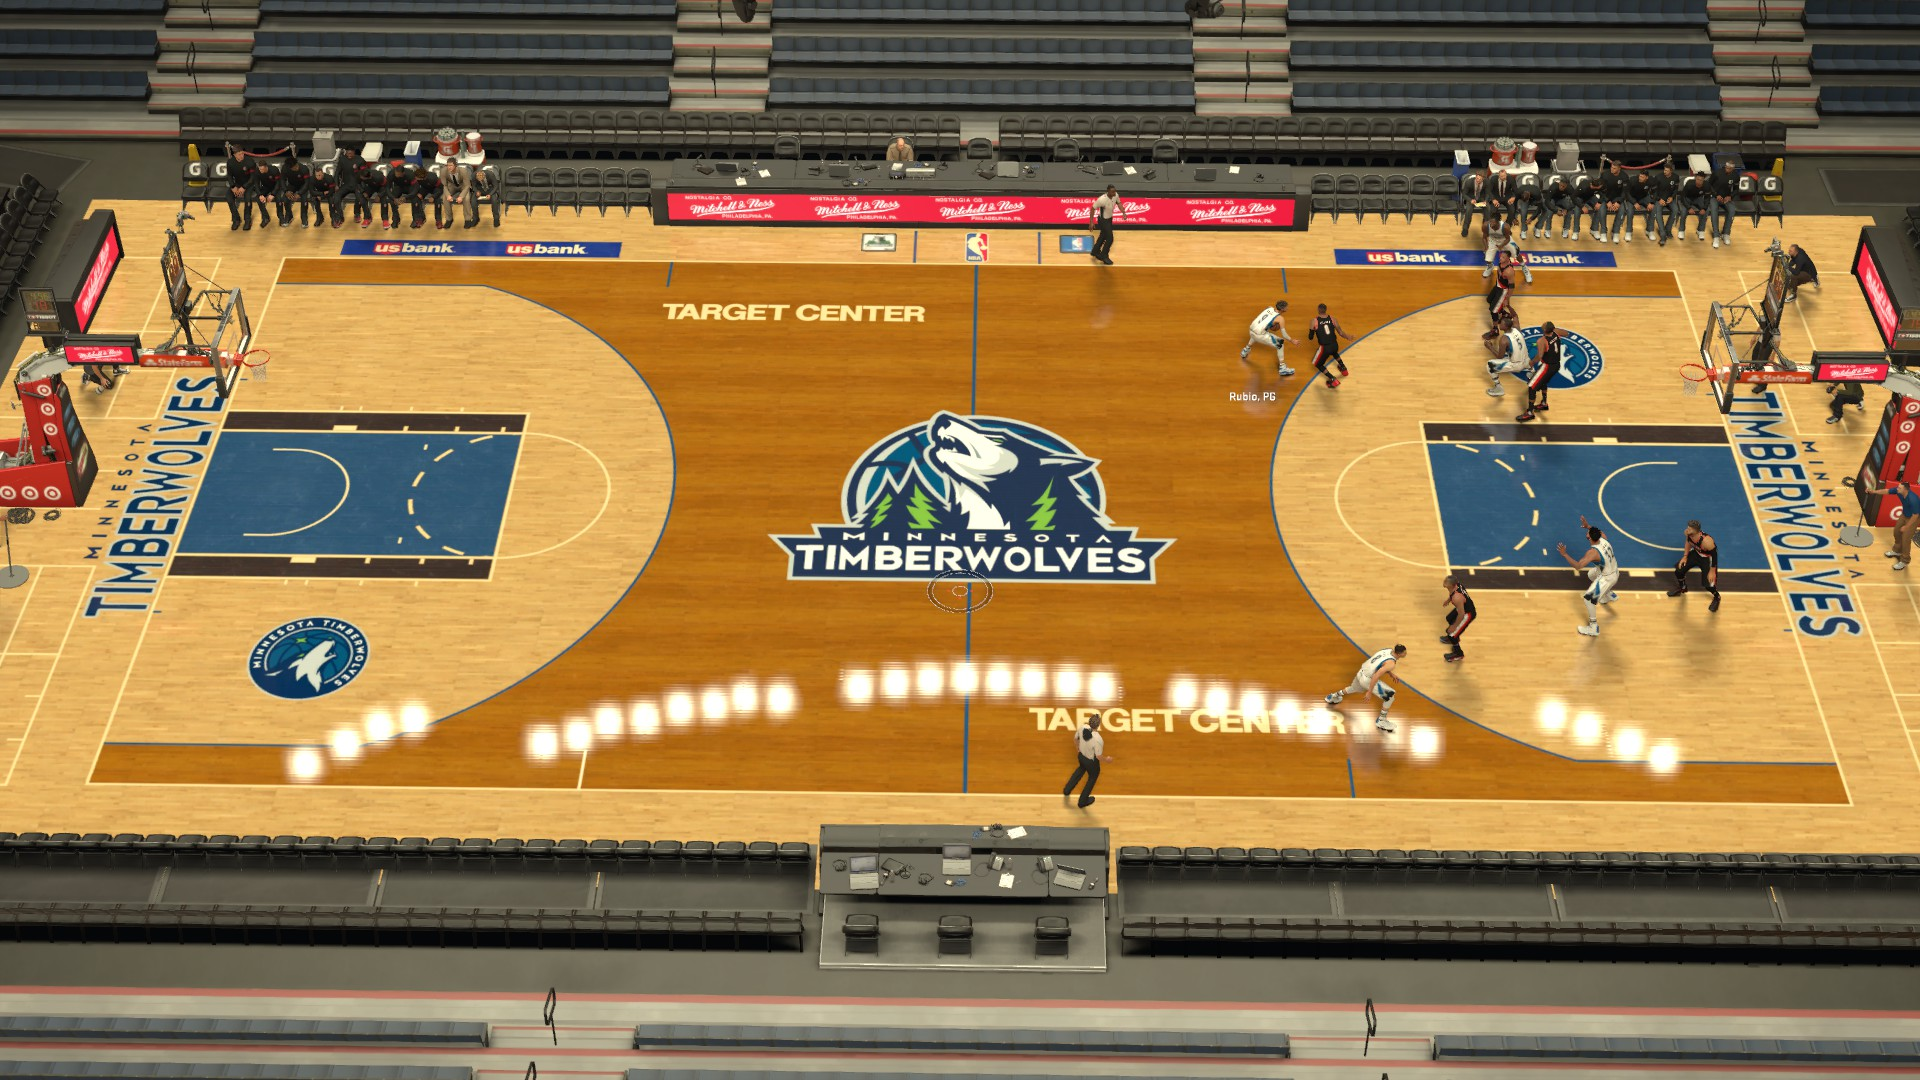 Minnesota Timberwolves Fictional Court